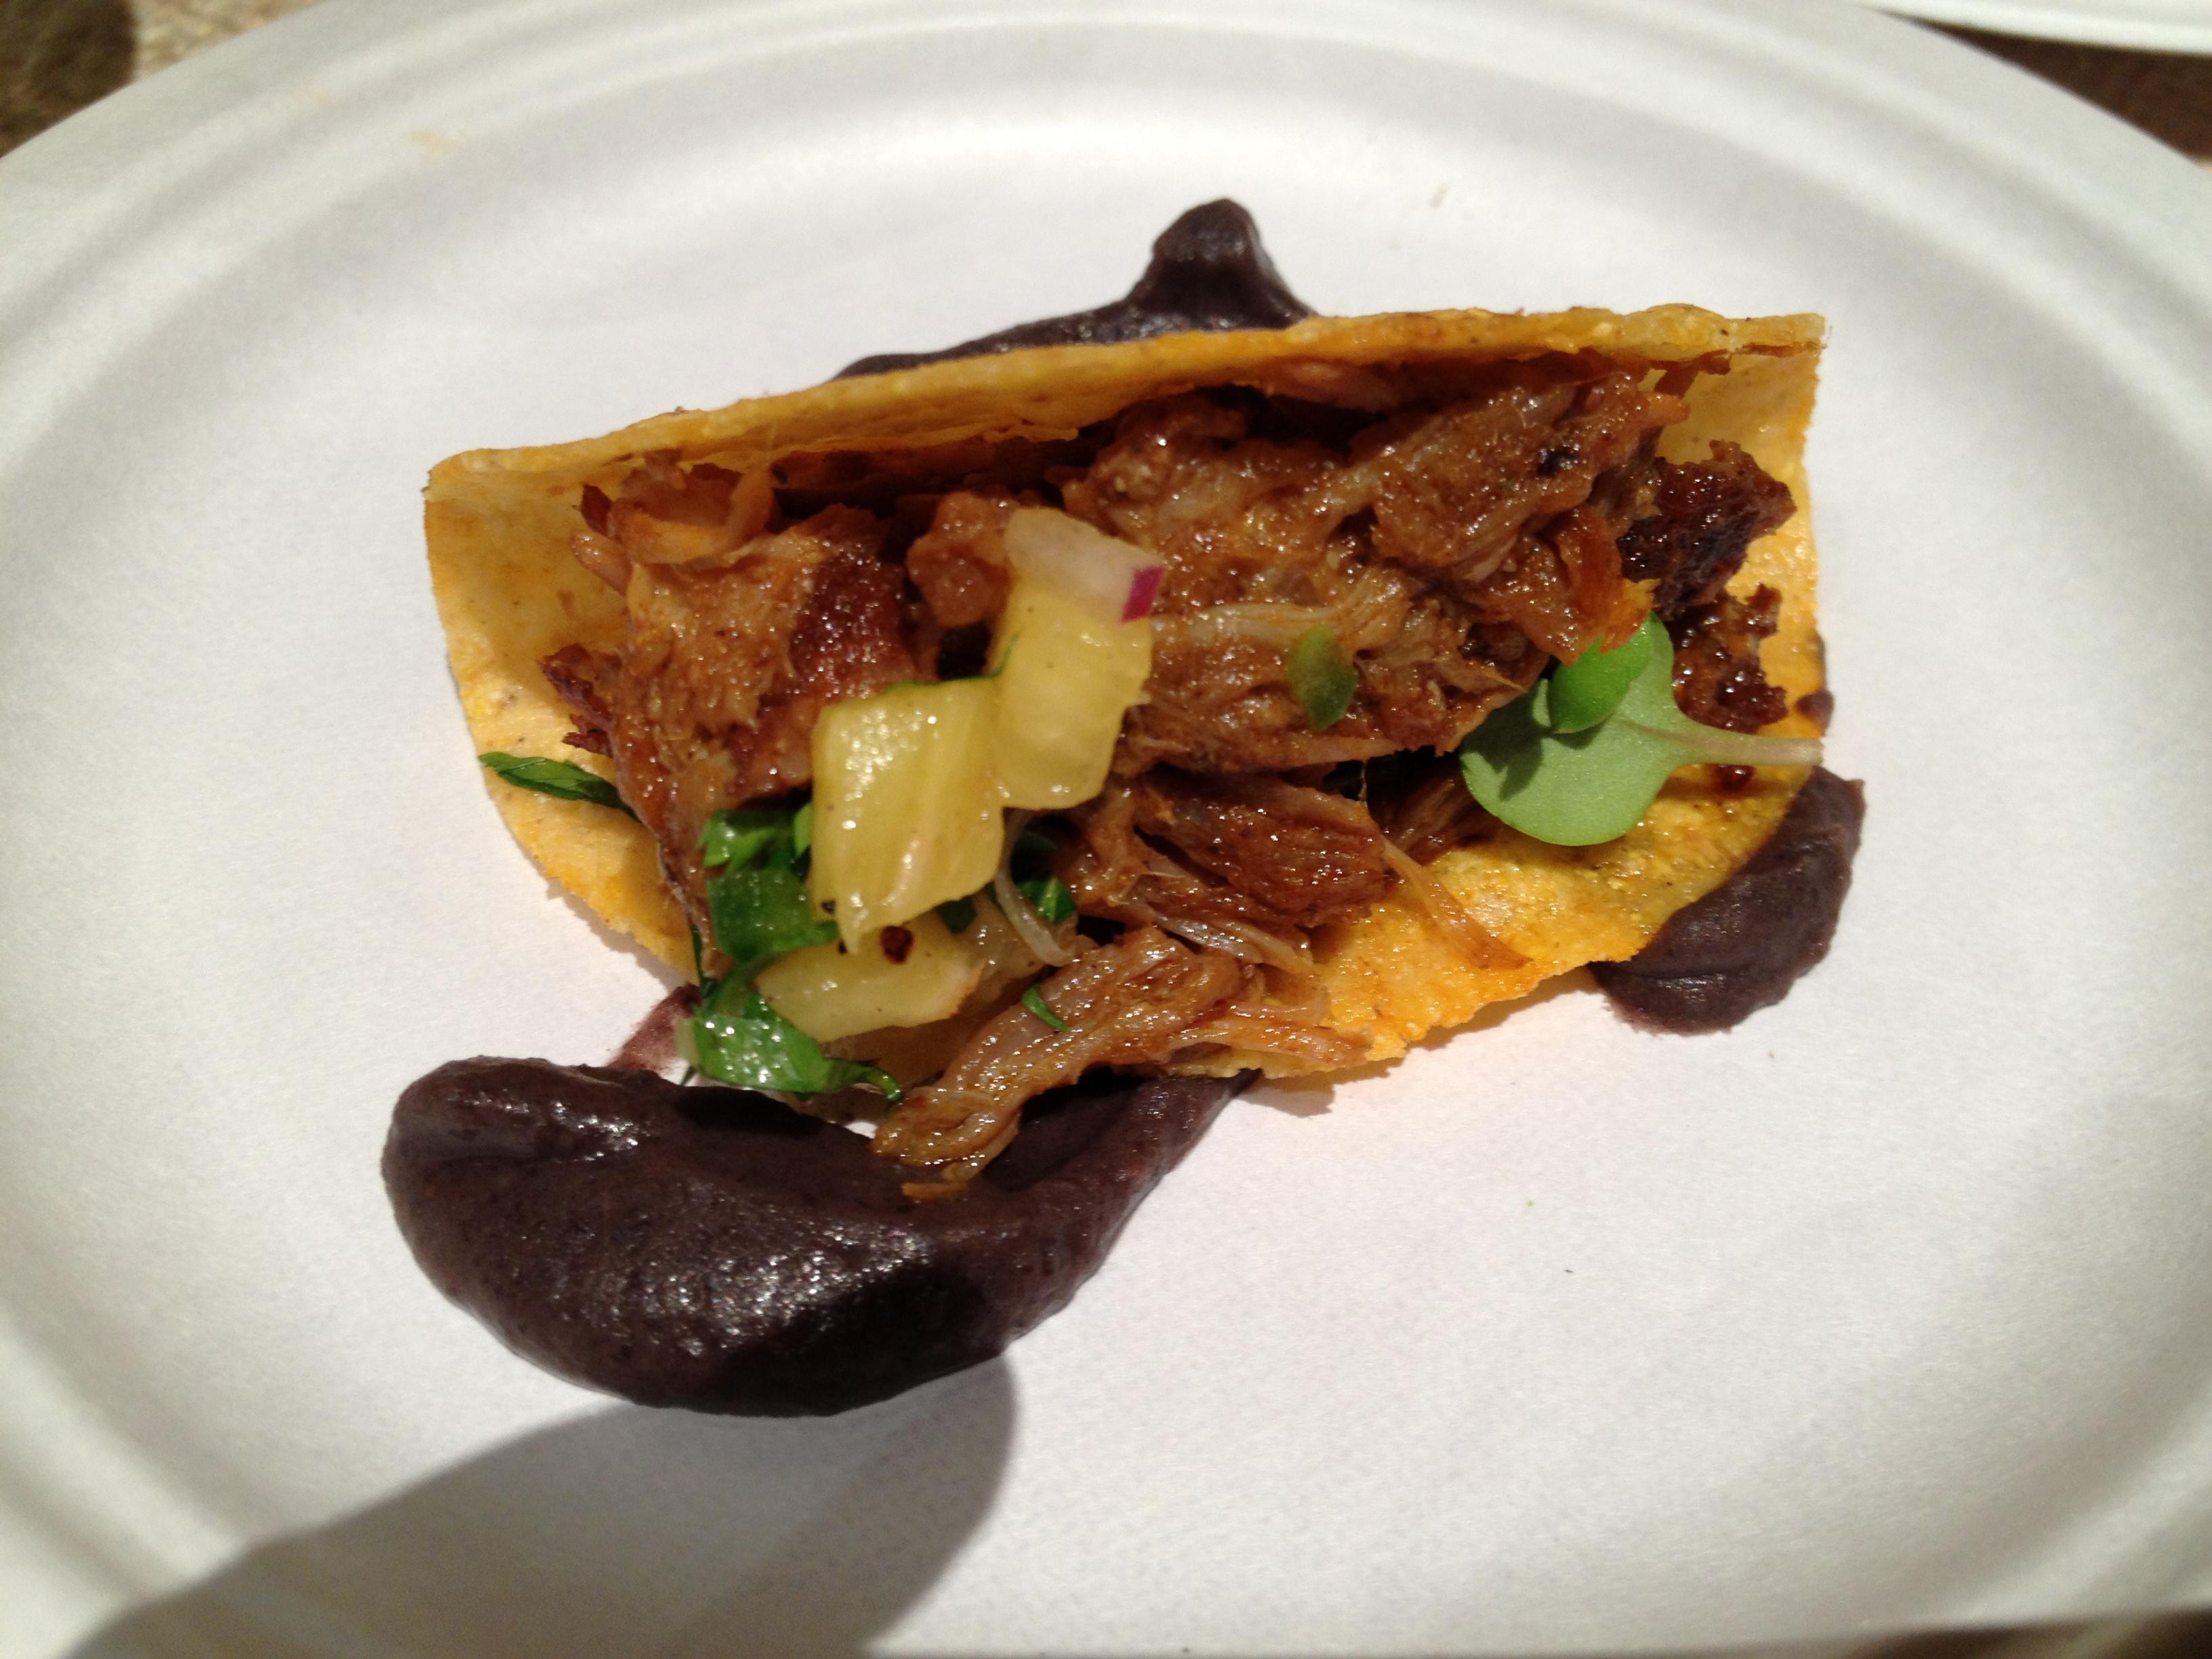 La Calaca Feliz' Tacos, featuring Countrytime Farm Pork Butt & True Leaf Micro Greens -- both local purveyors.